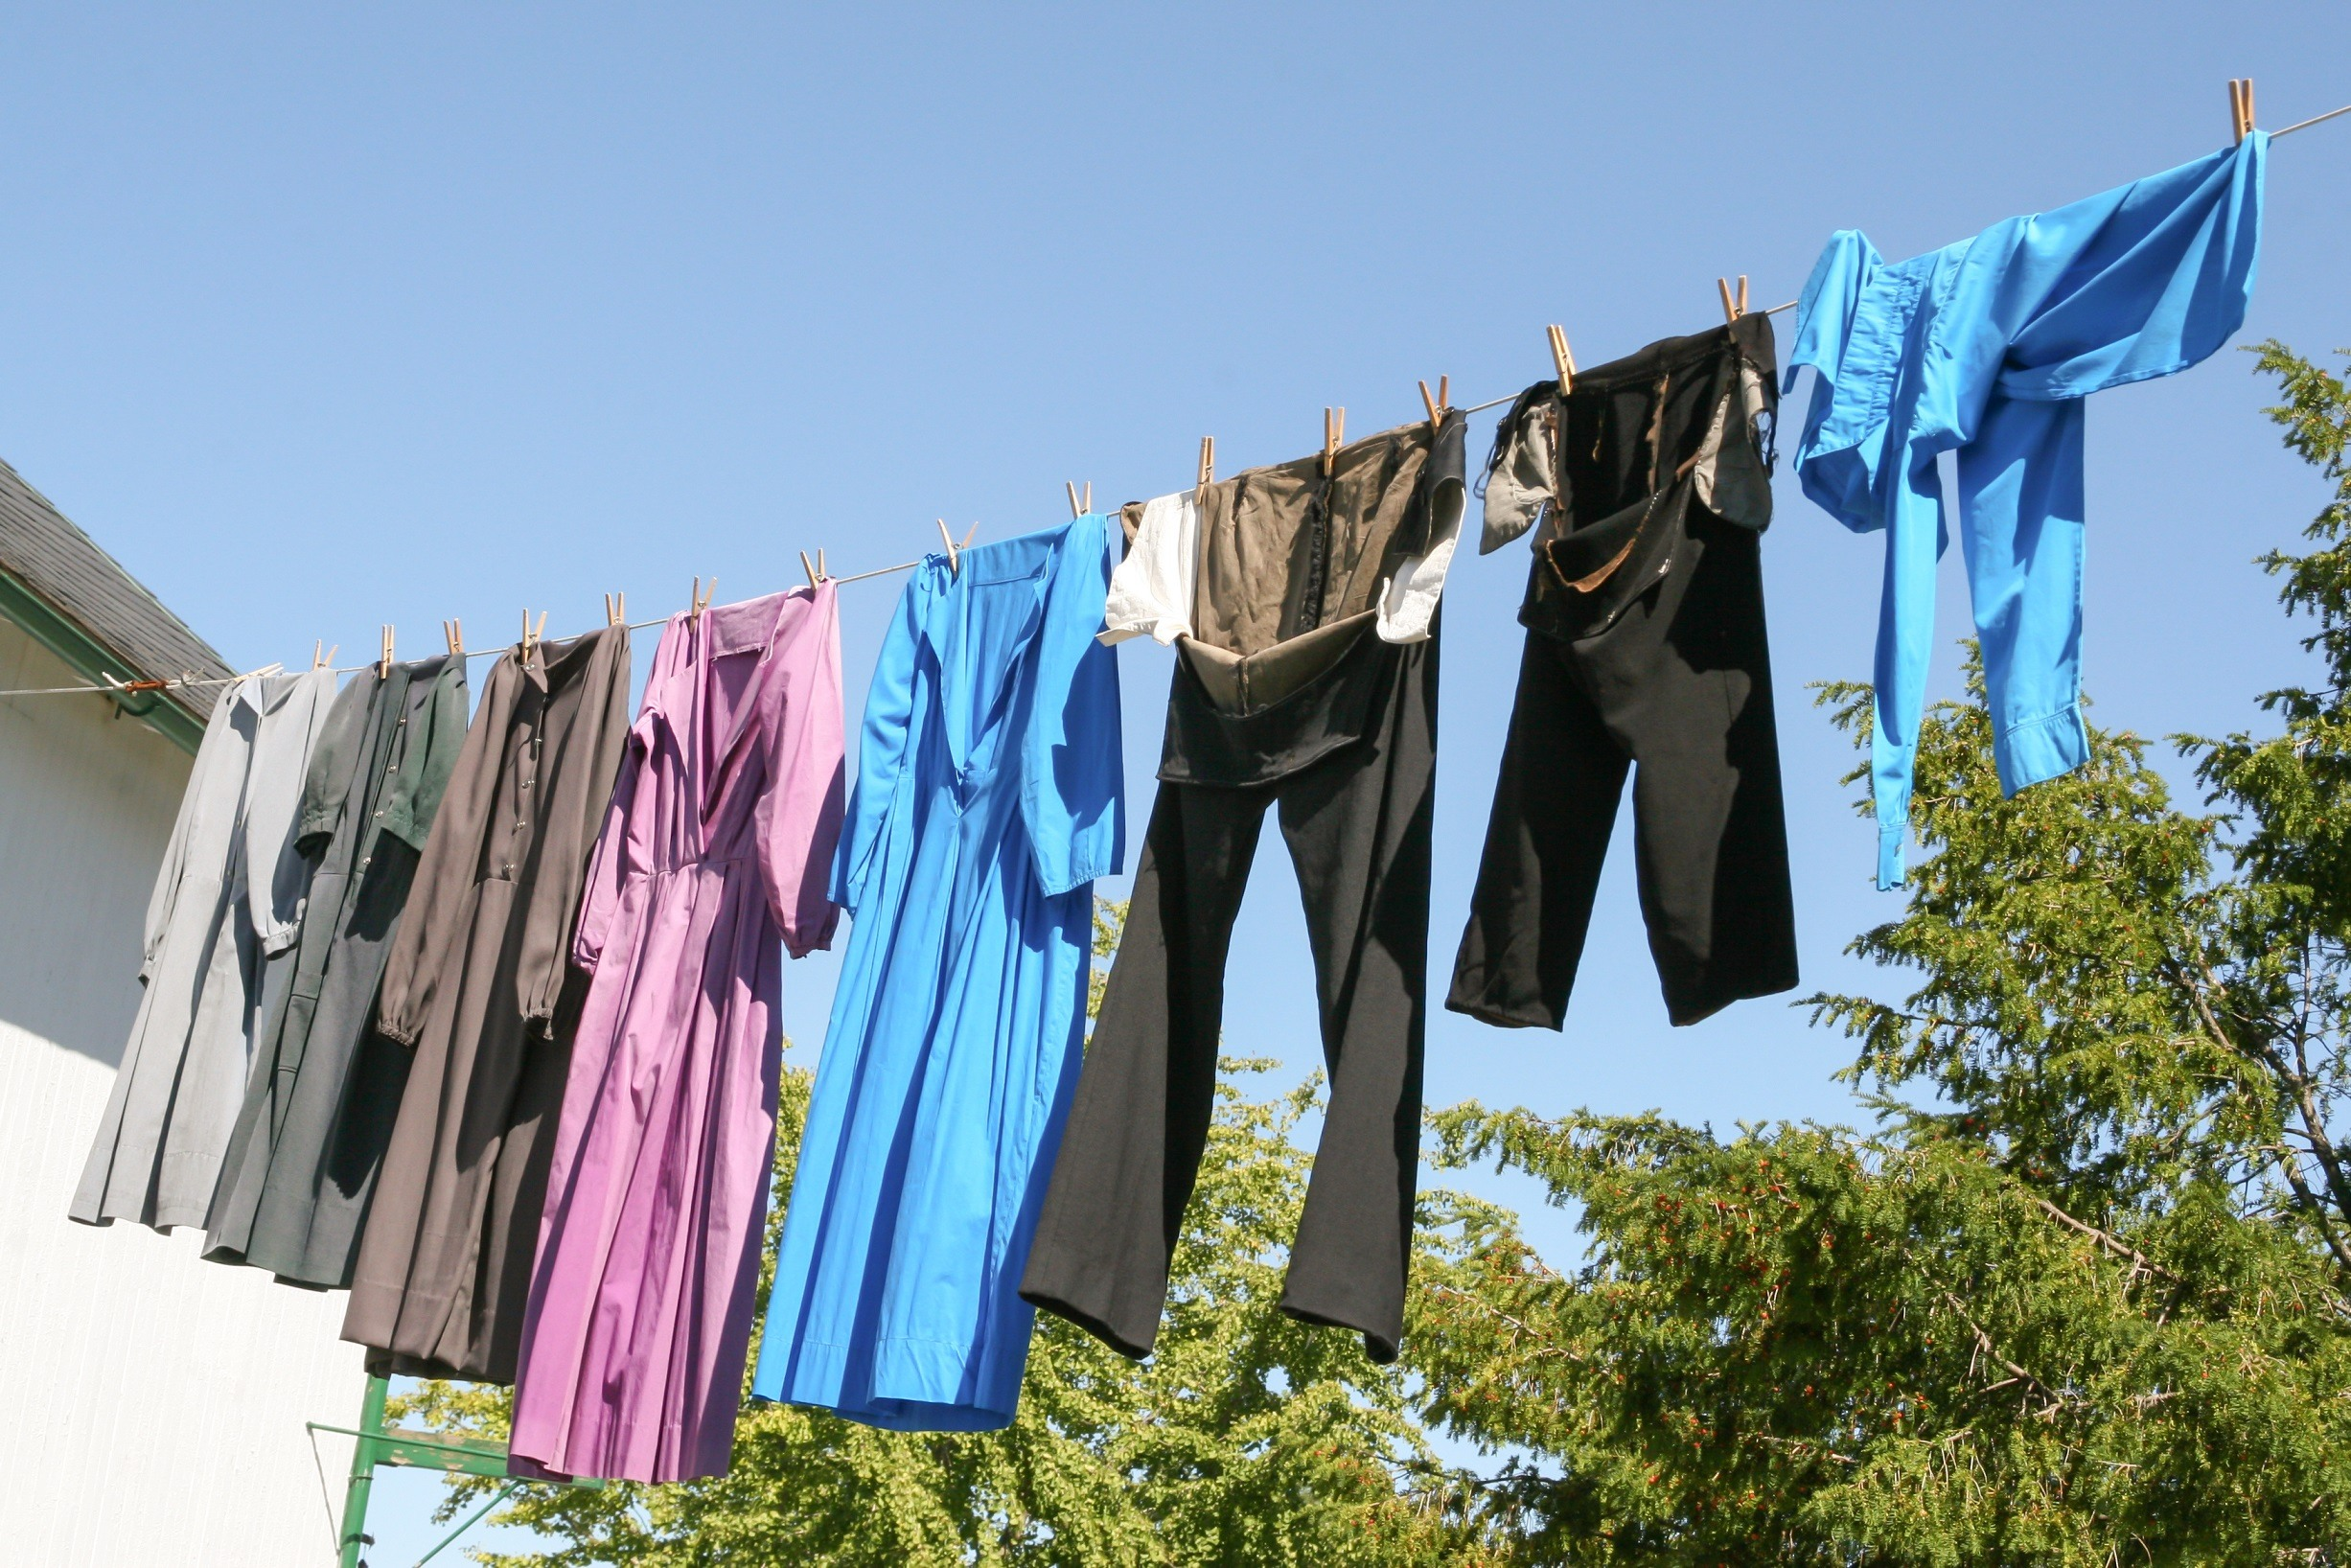 Amish Laundry in Lancaster, PA